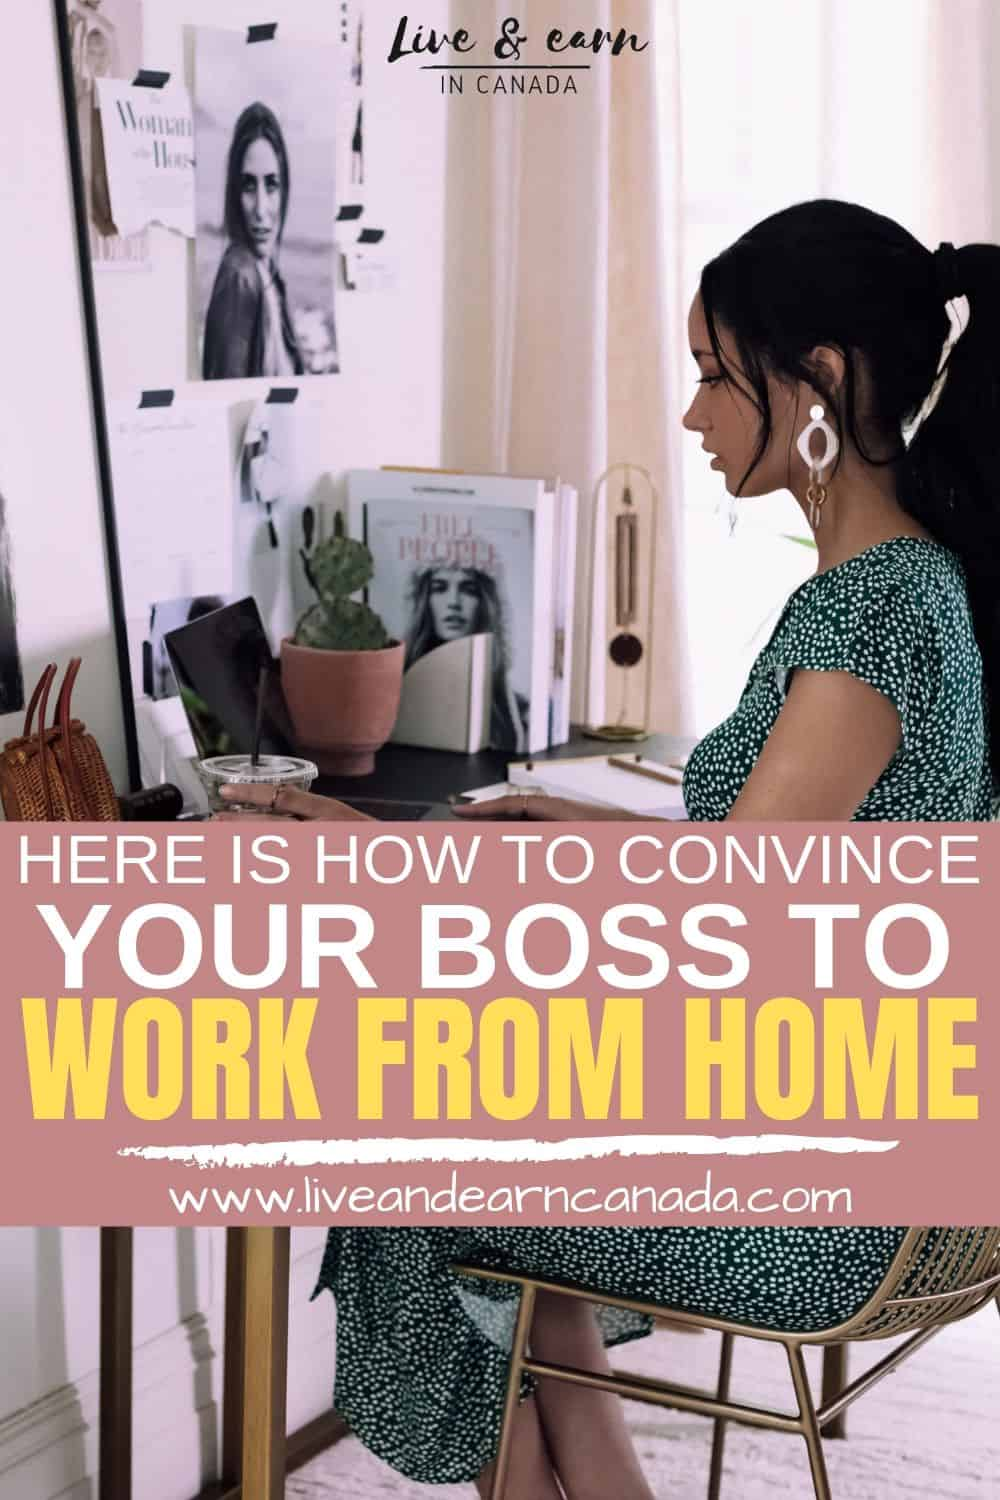 Here is how to convince your boss to work from home part-time. Here is how to land a job working from home part time. #workfromhome #parttimejob #jobs #boss